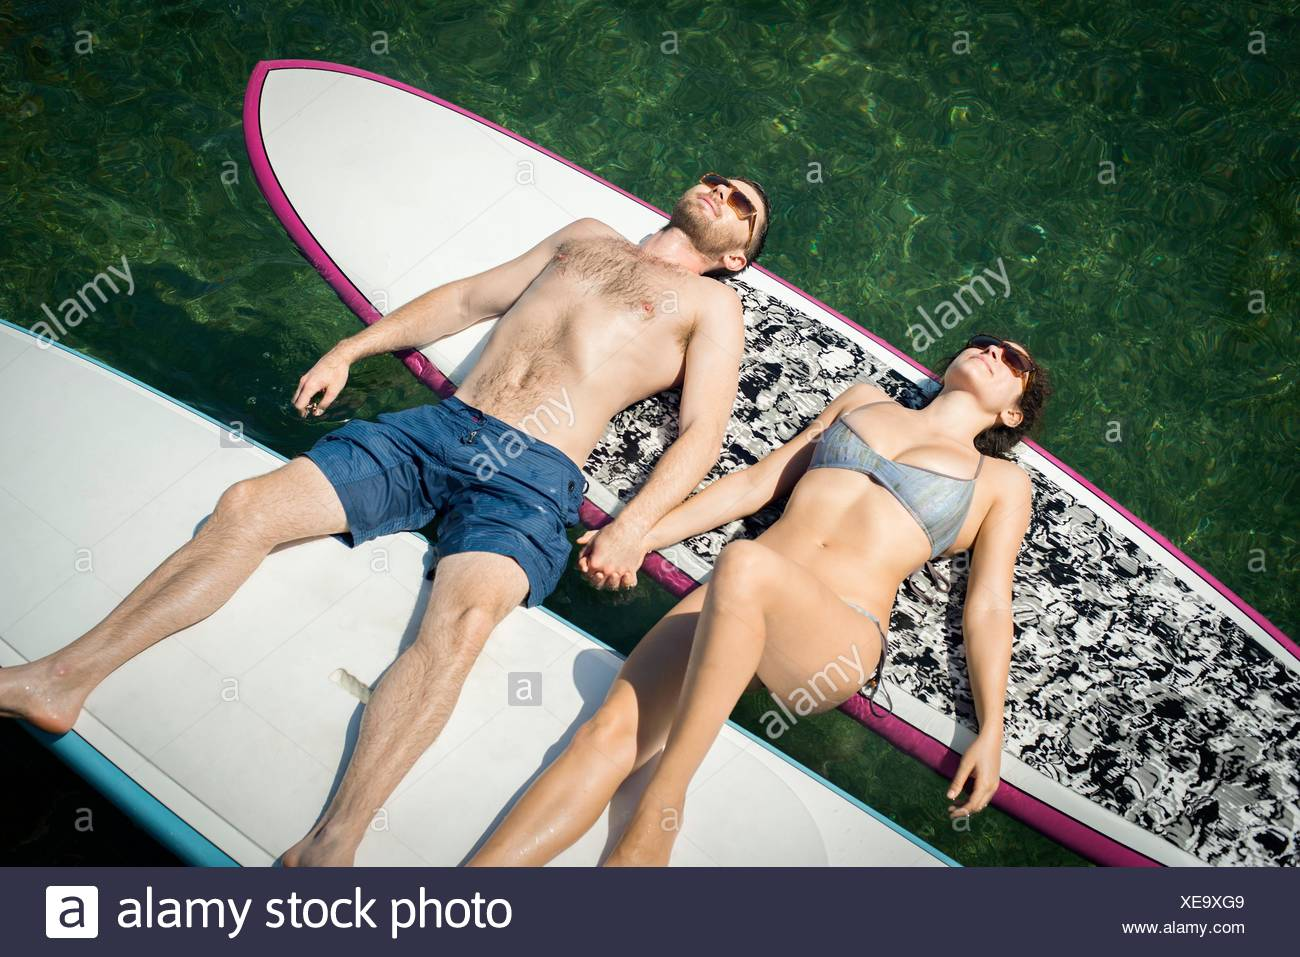 Overhead view of young couple sunbathing on paddleboards - Stock Image